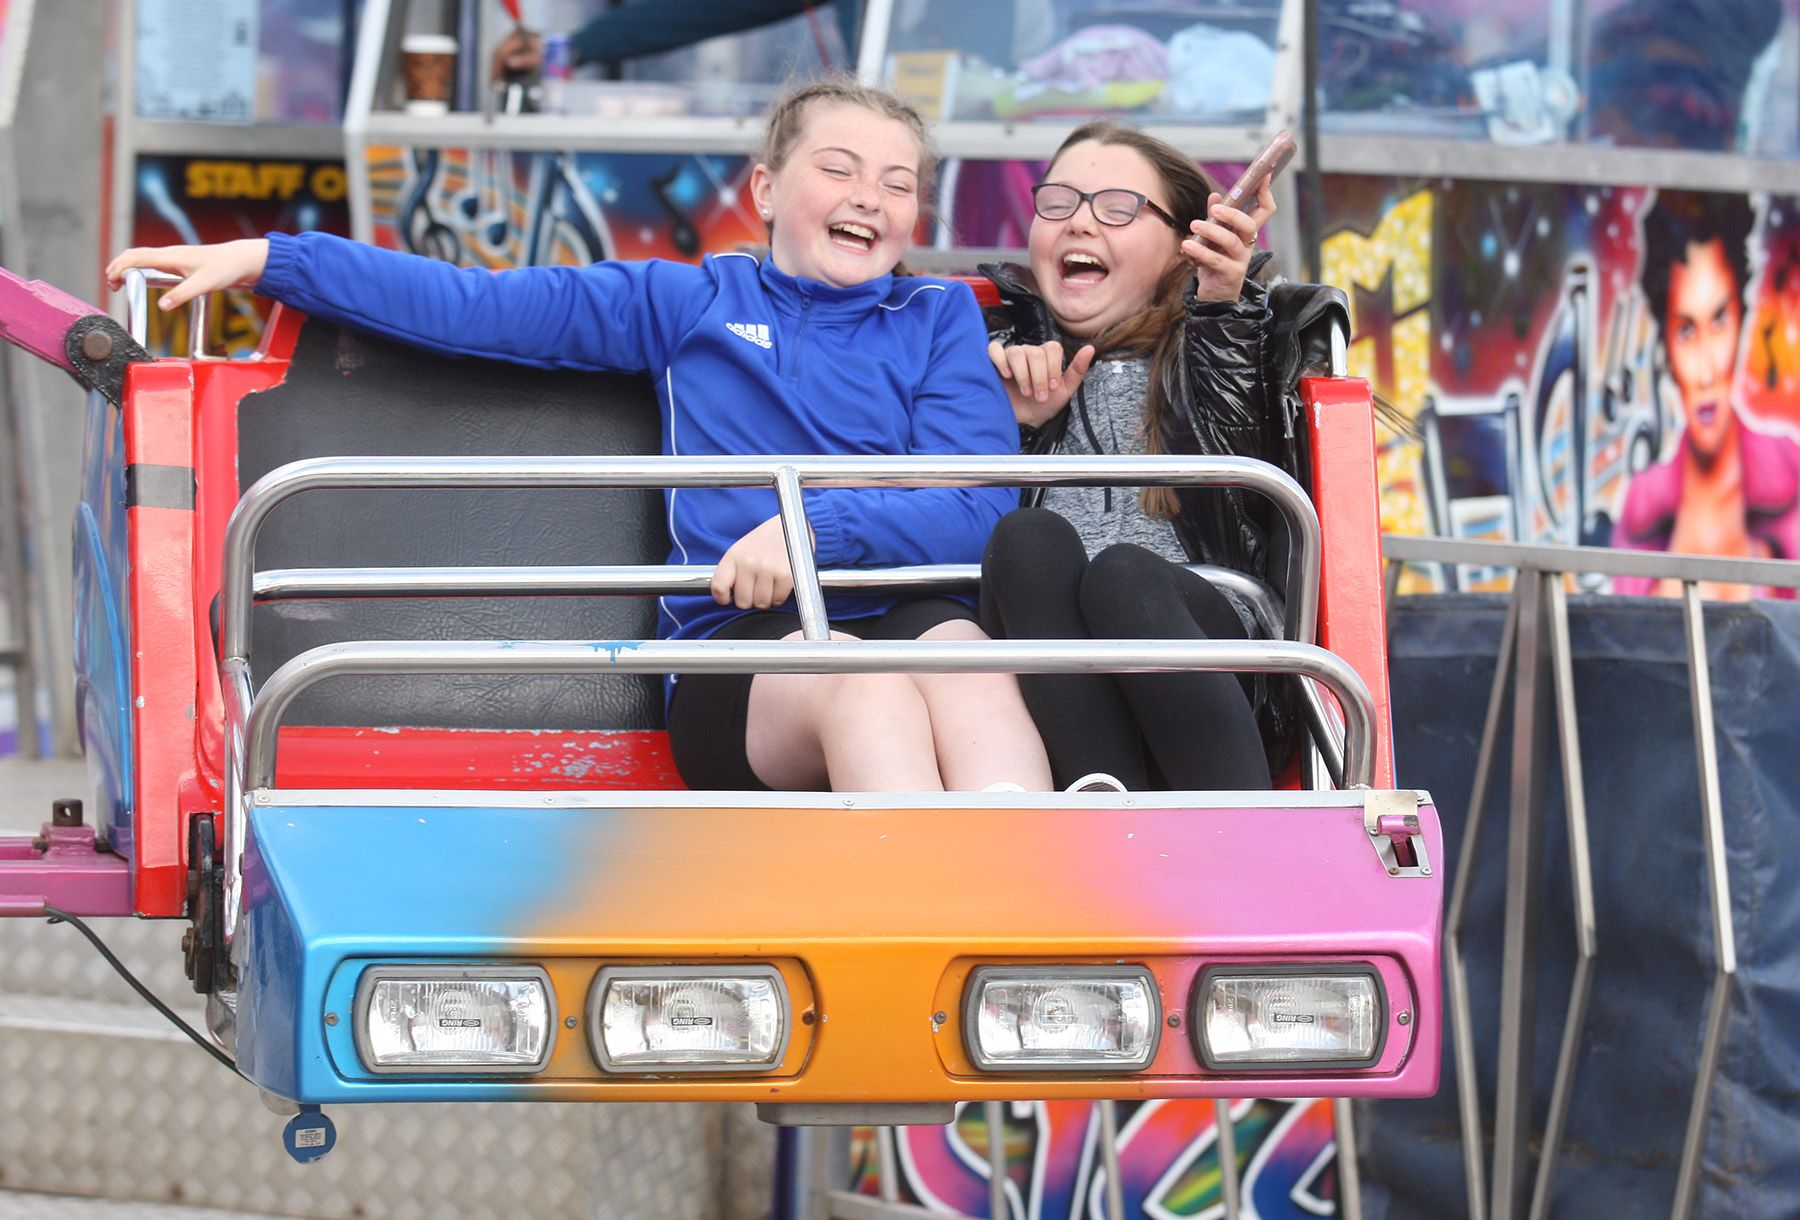 FUN AT THE FAIR: There is something for the whole family as Cullens roll into Ardoyne until 20 June